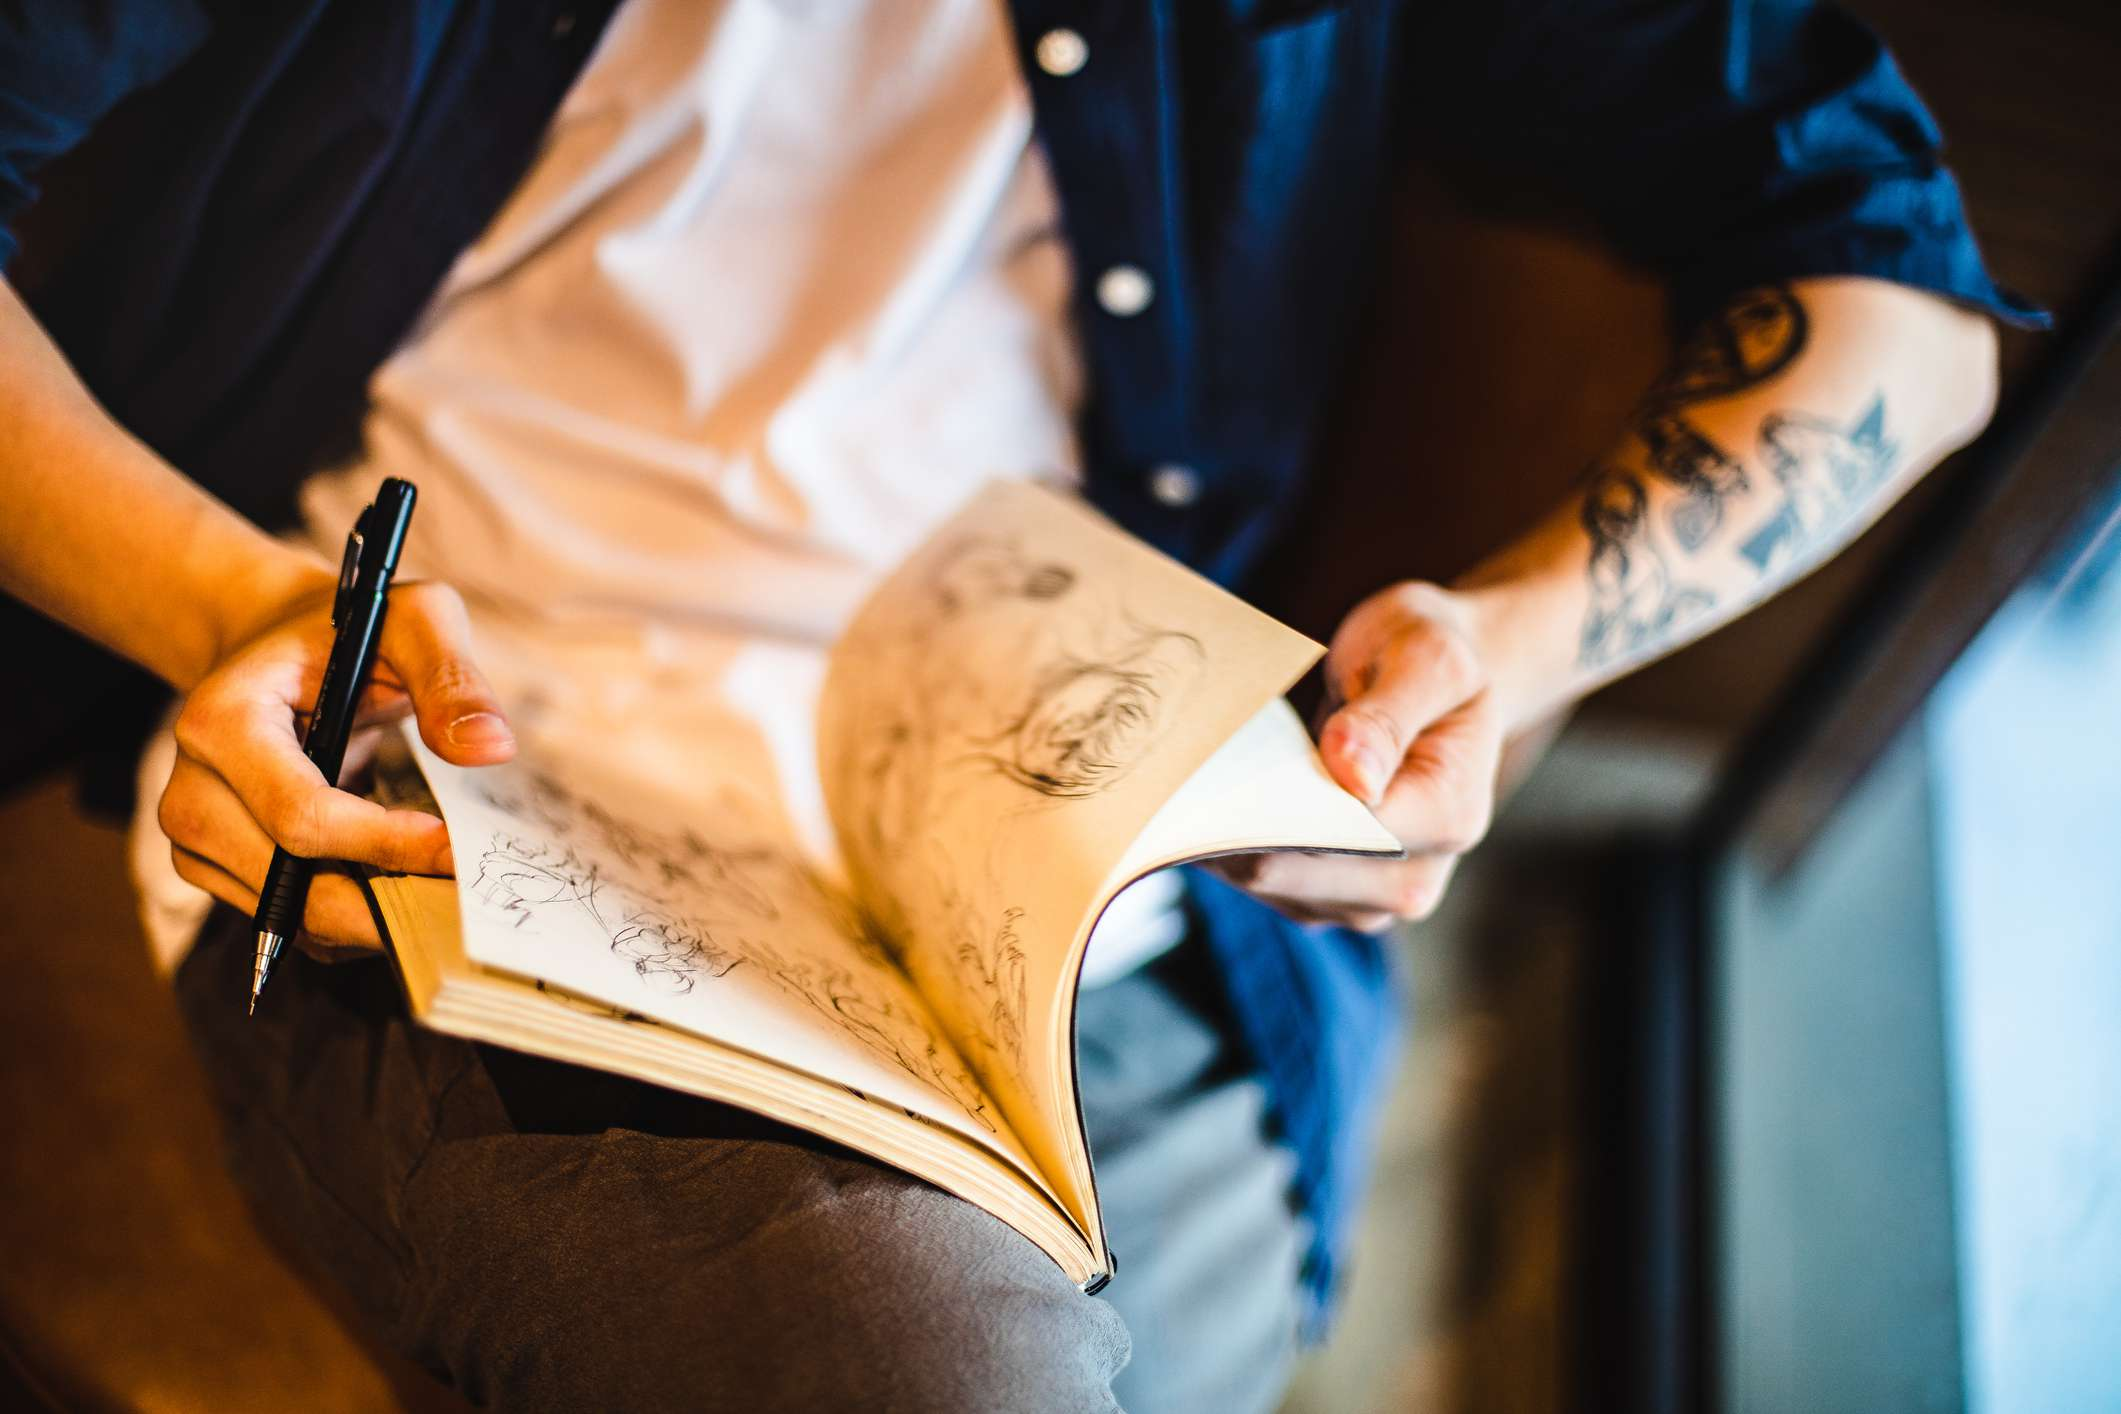 Asian young man sitting and doing a sketch on a notebook